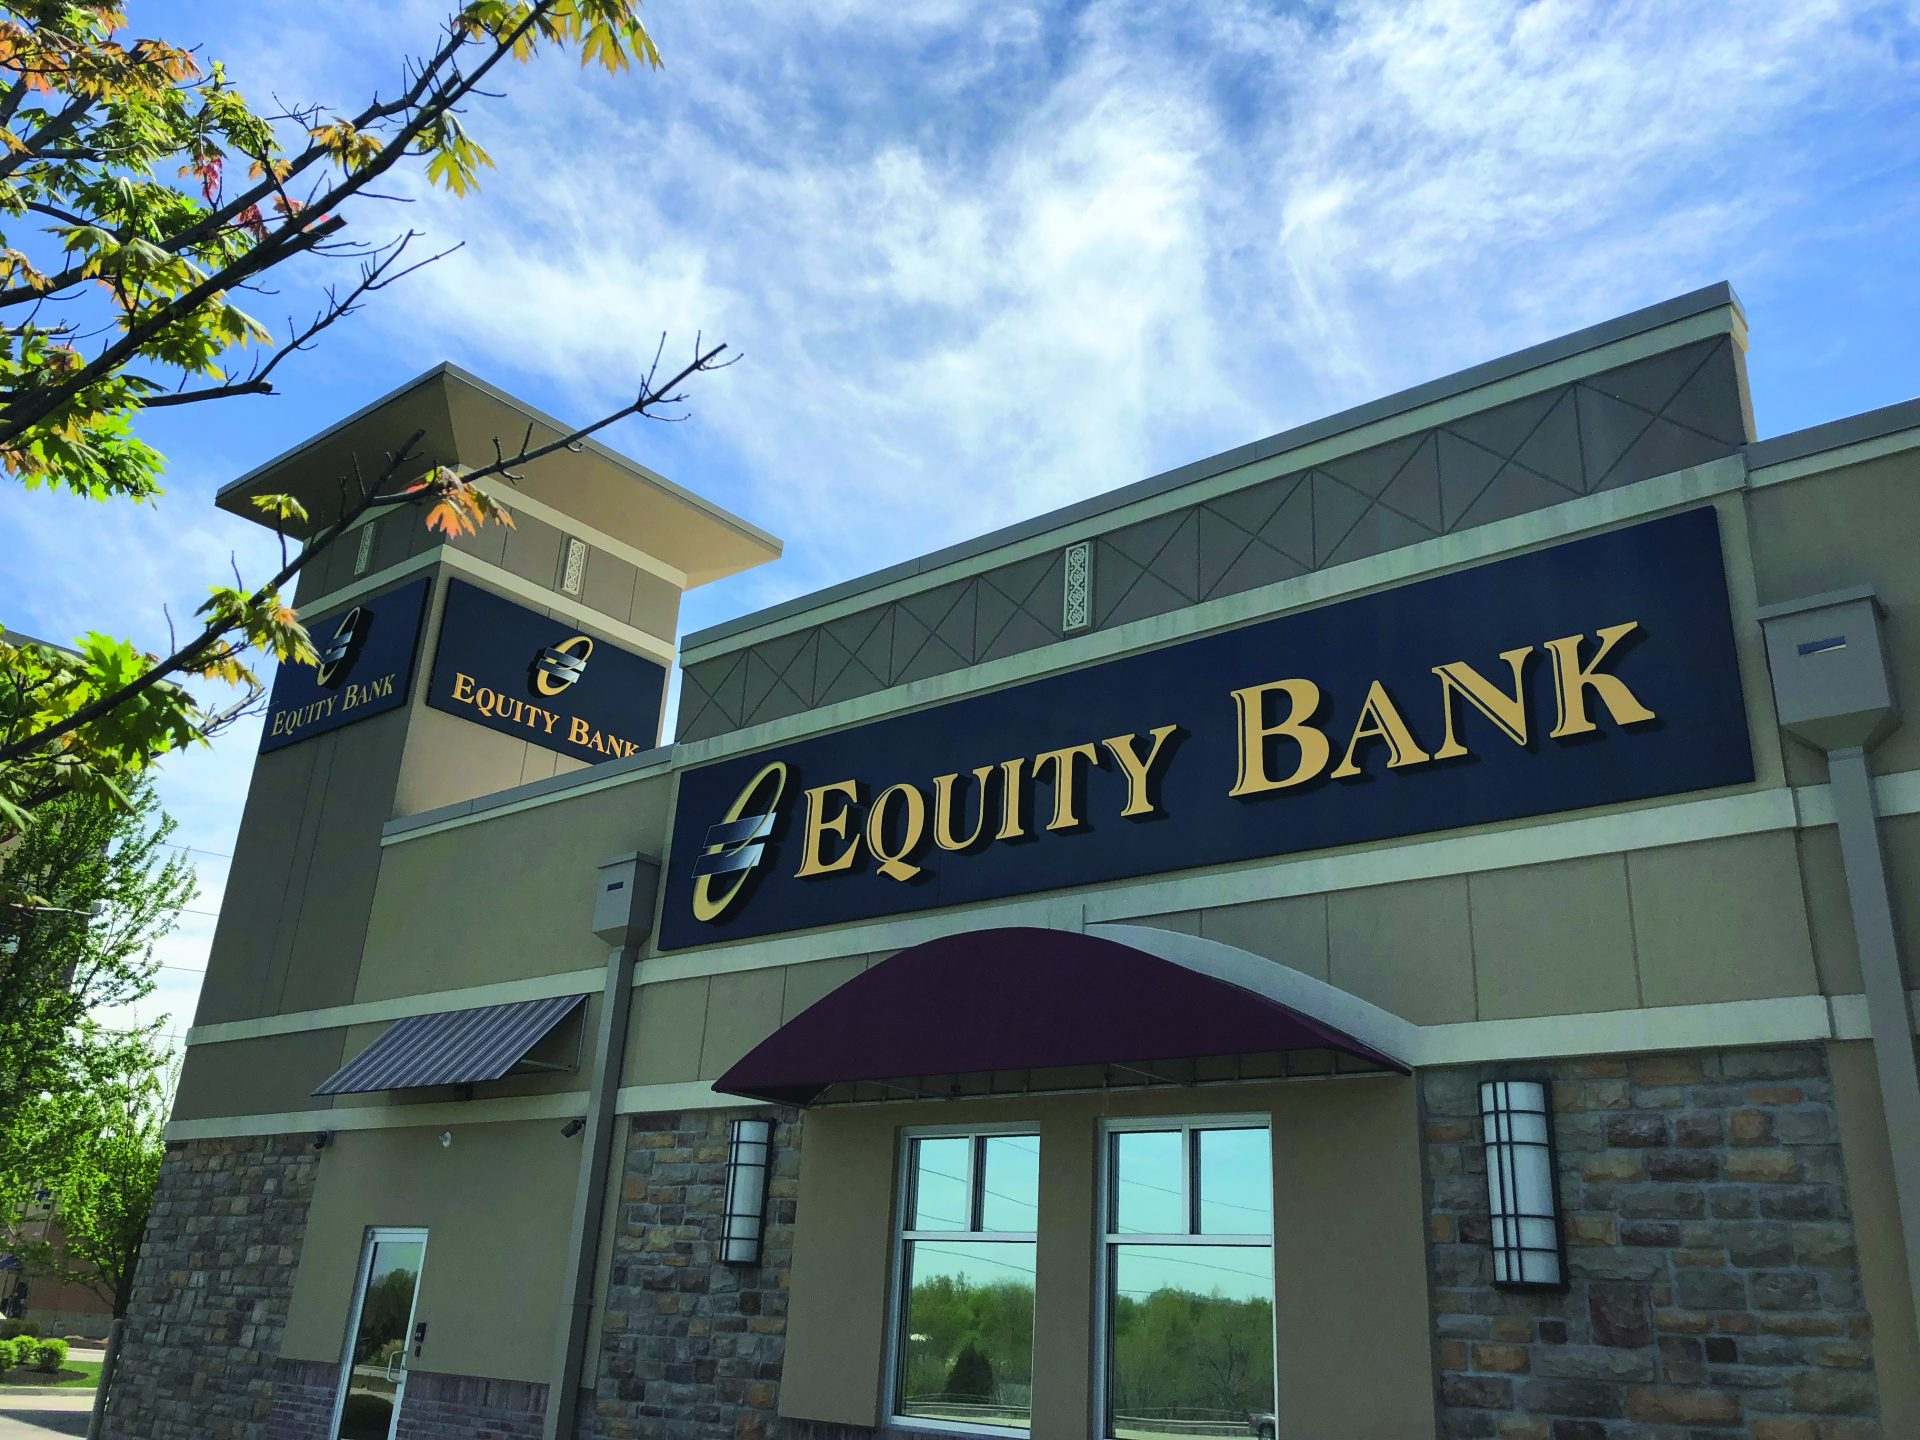 Equity Bank Blue Springs branch exterior.